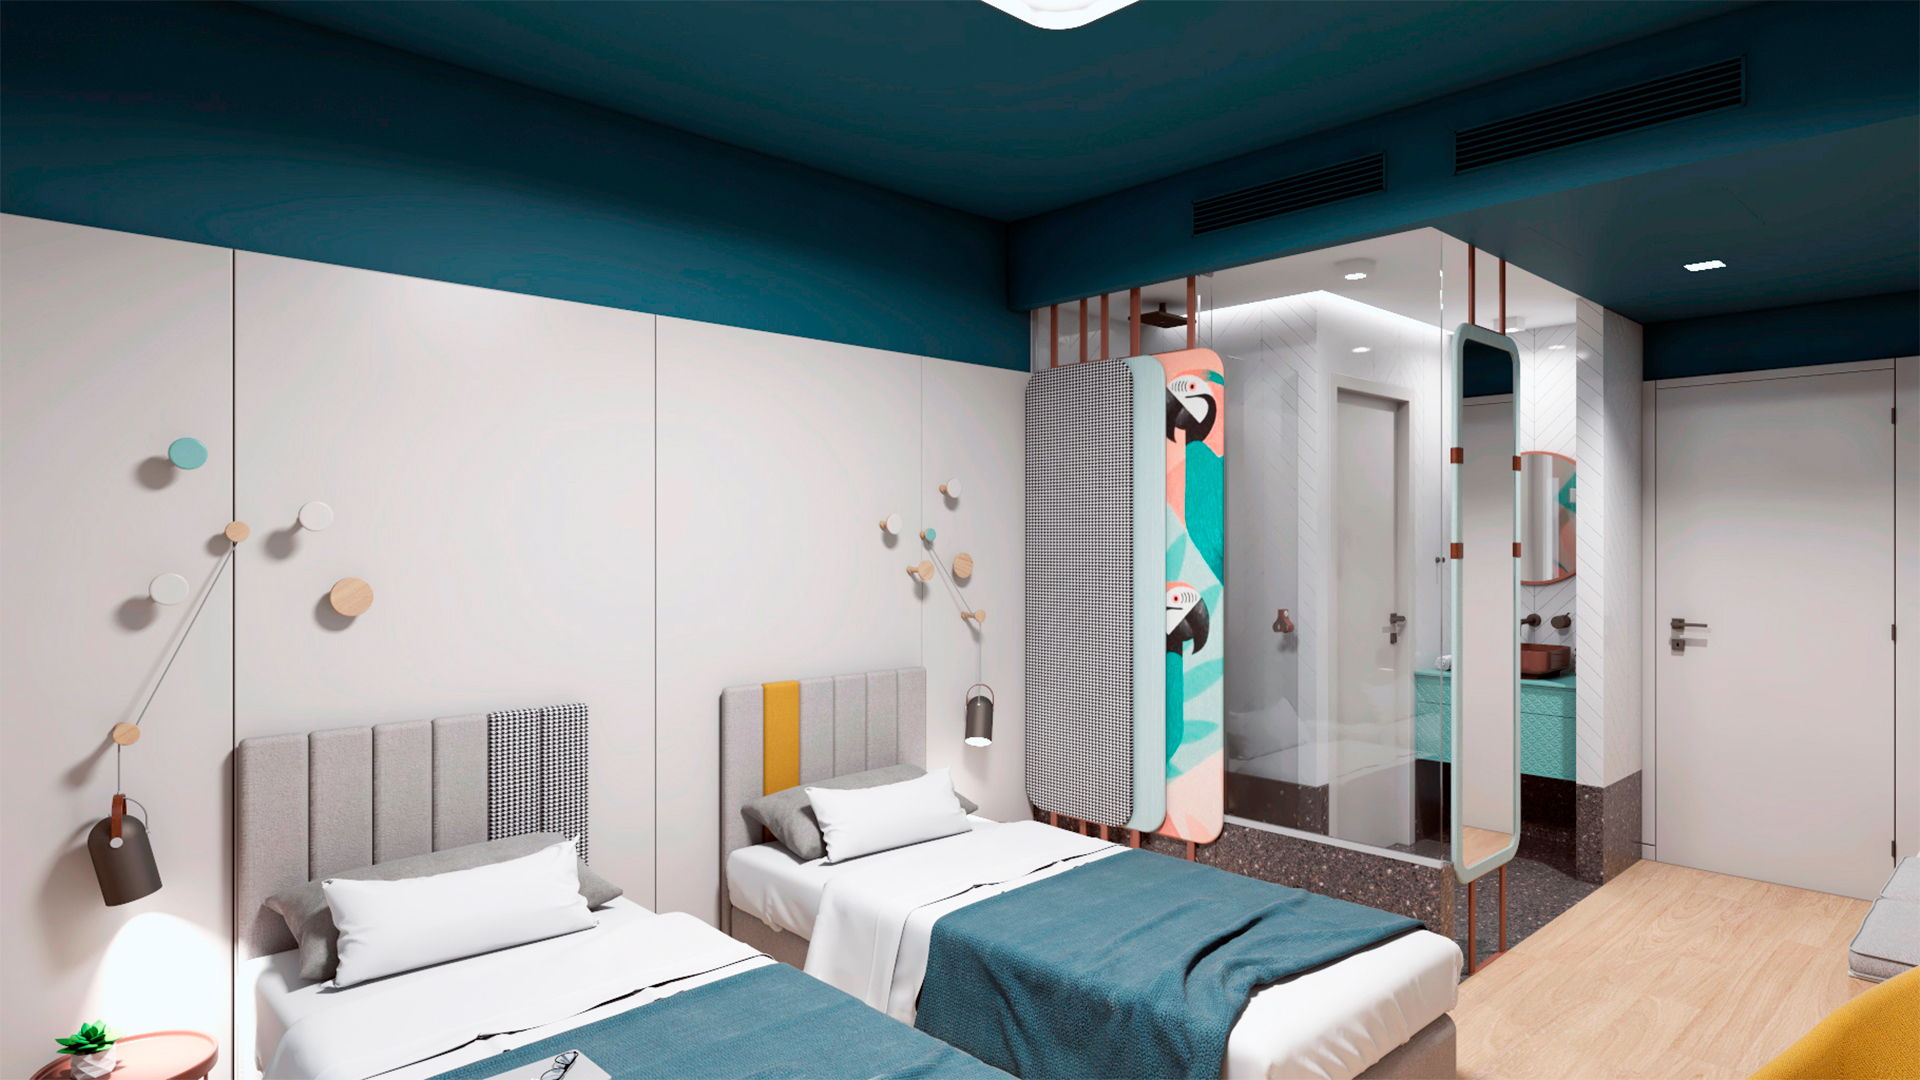 0014-b04-parti-architecture-city-hotel-room